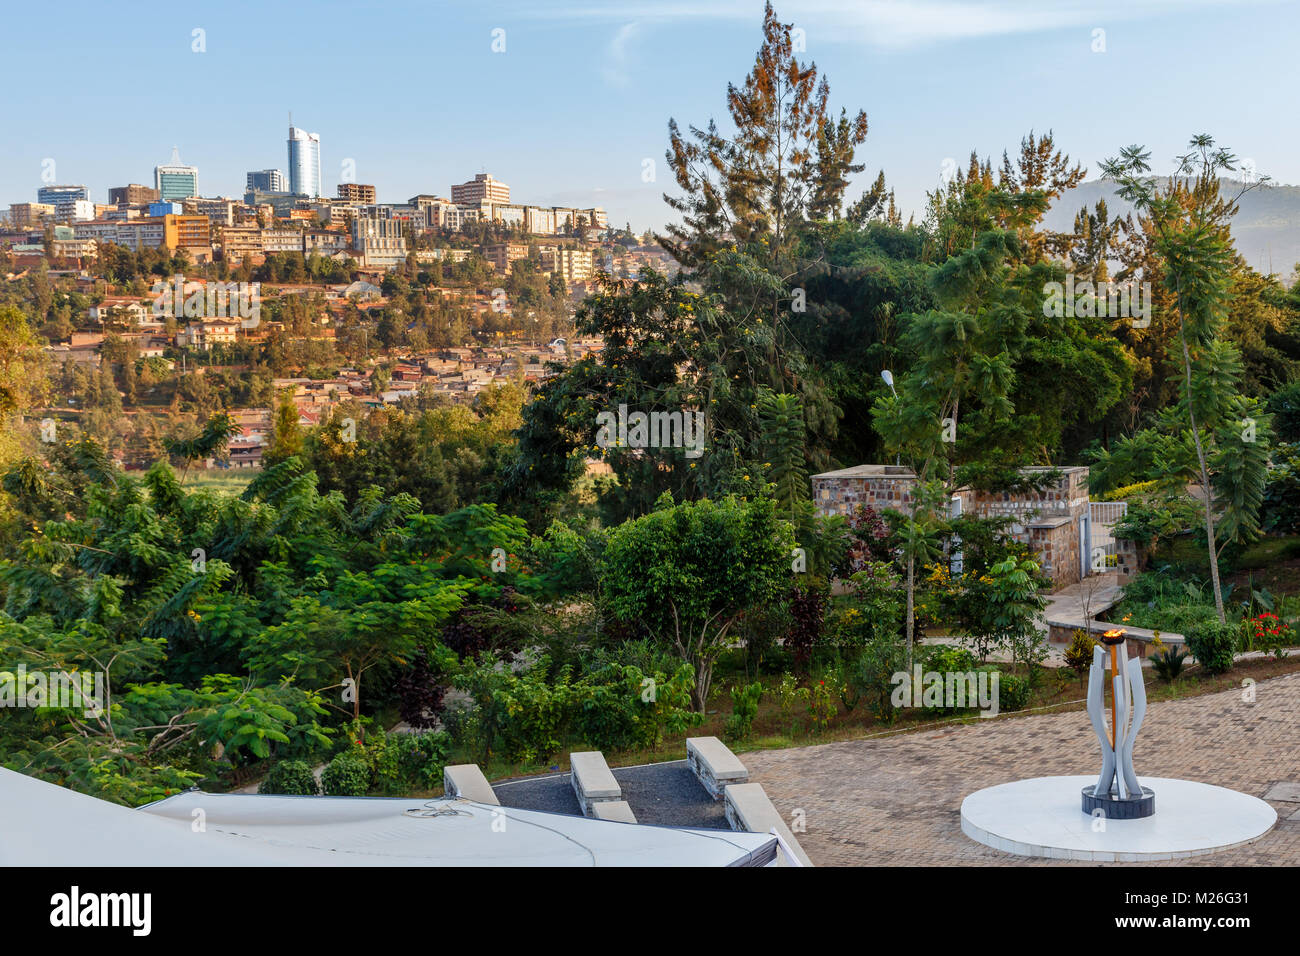 Genocide memorial and city bussiness district view of Kigali, Rwanda - Stock Image